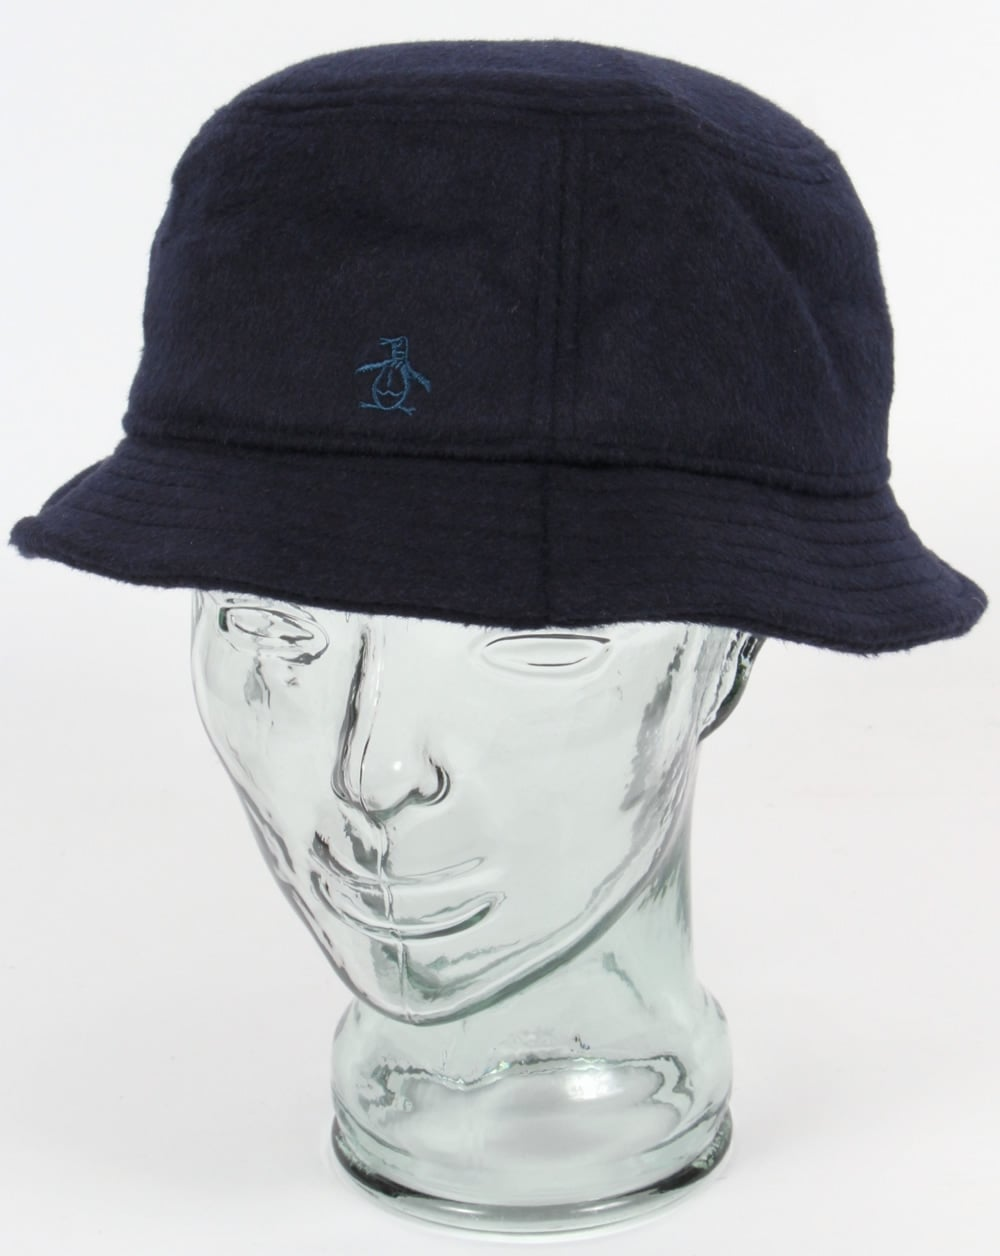 Original Penguin Original Penguin Wool Bucket Hat Dark Sapphire 7898b7a3a57